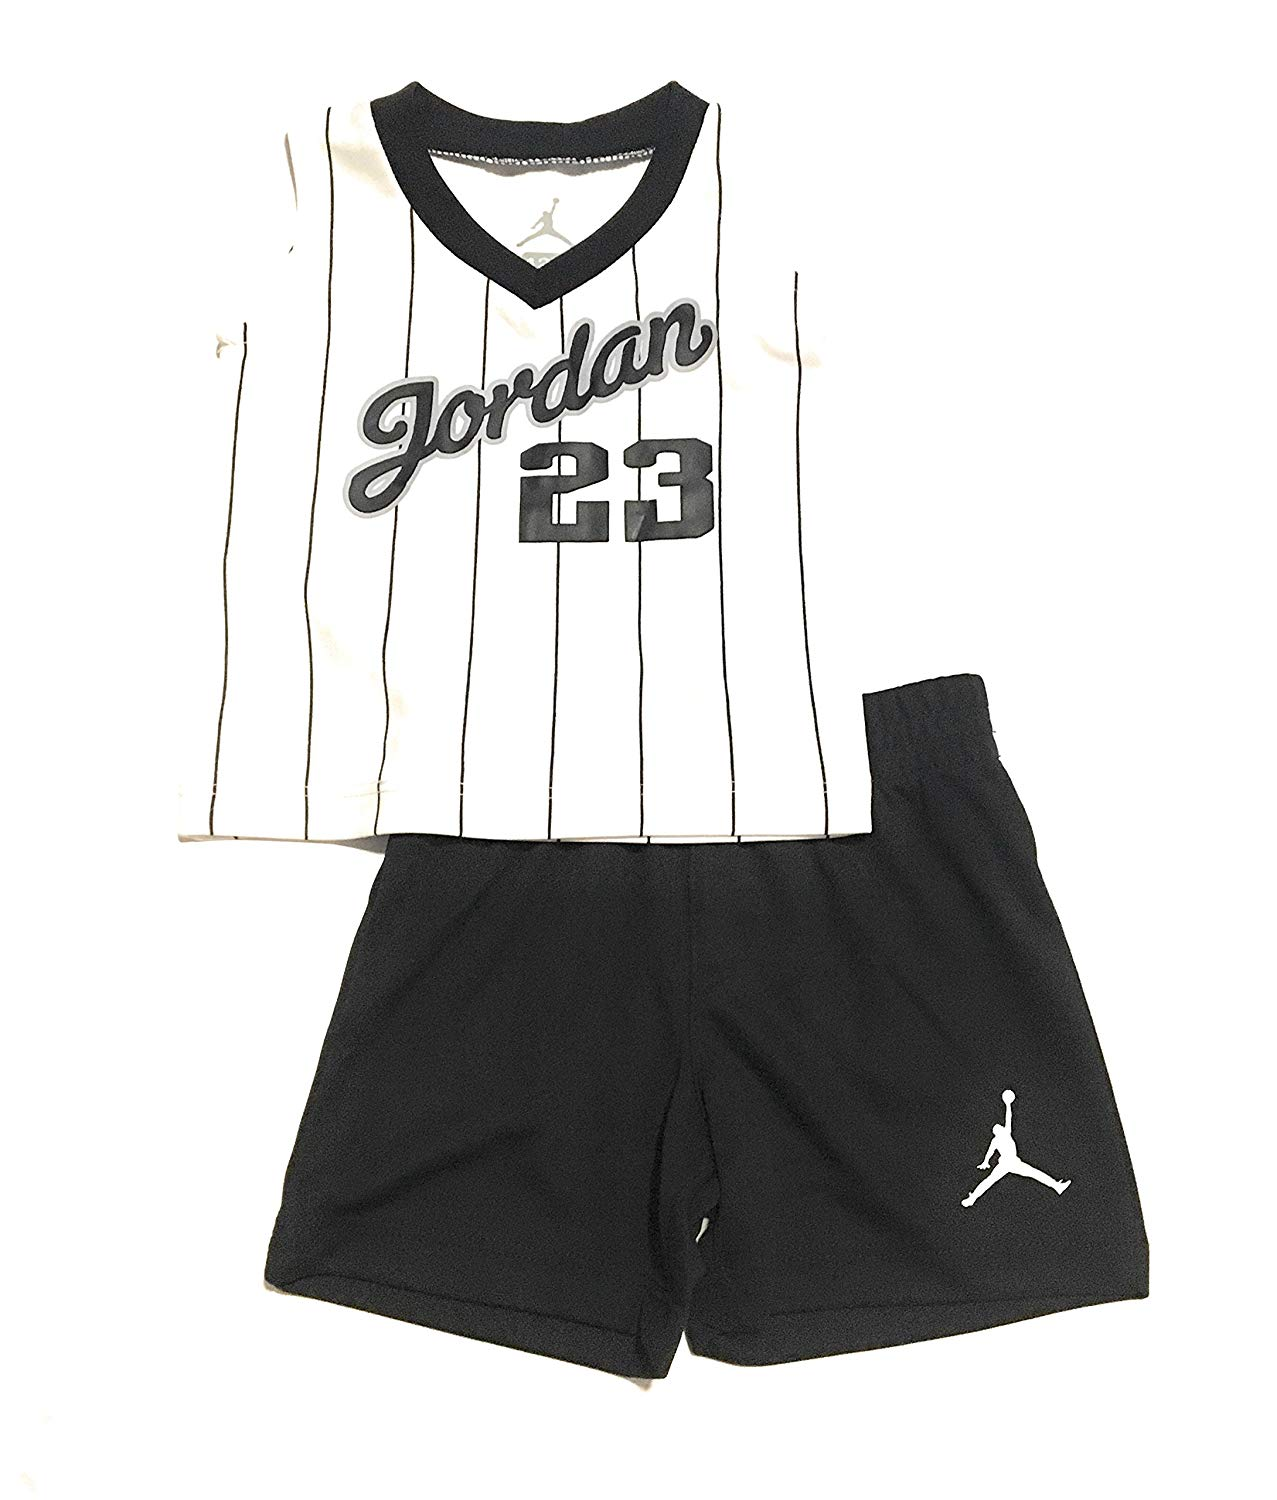 d3be0f86d9296c Get Quotations · Jordan Infant Boys Tank Top and Short Set White Black Size  24 Months